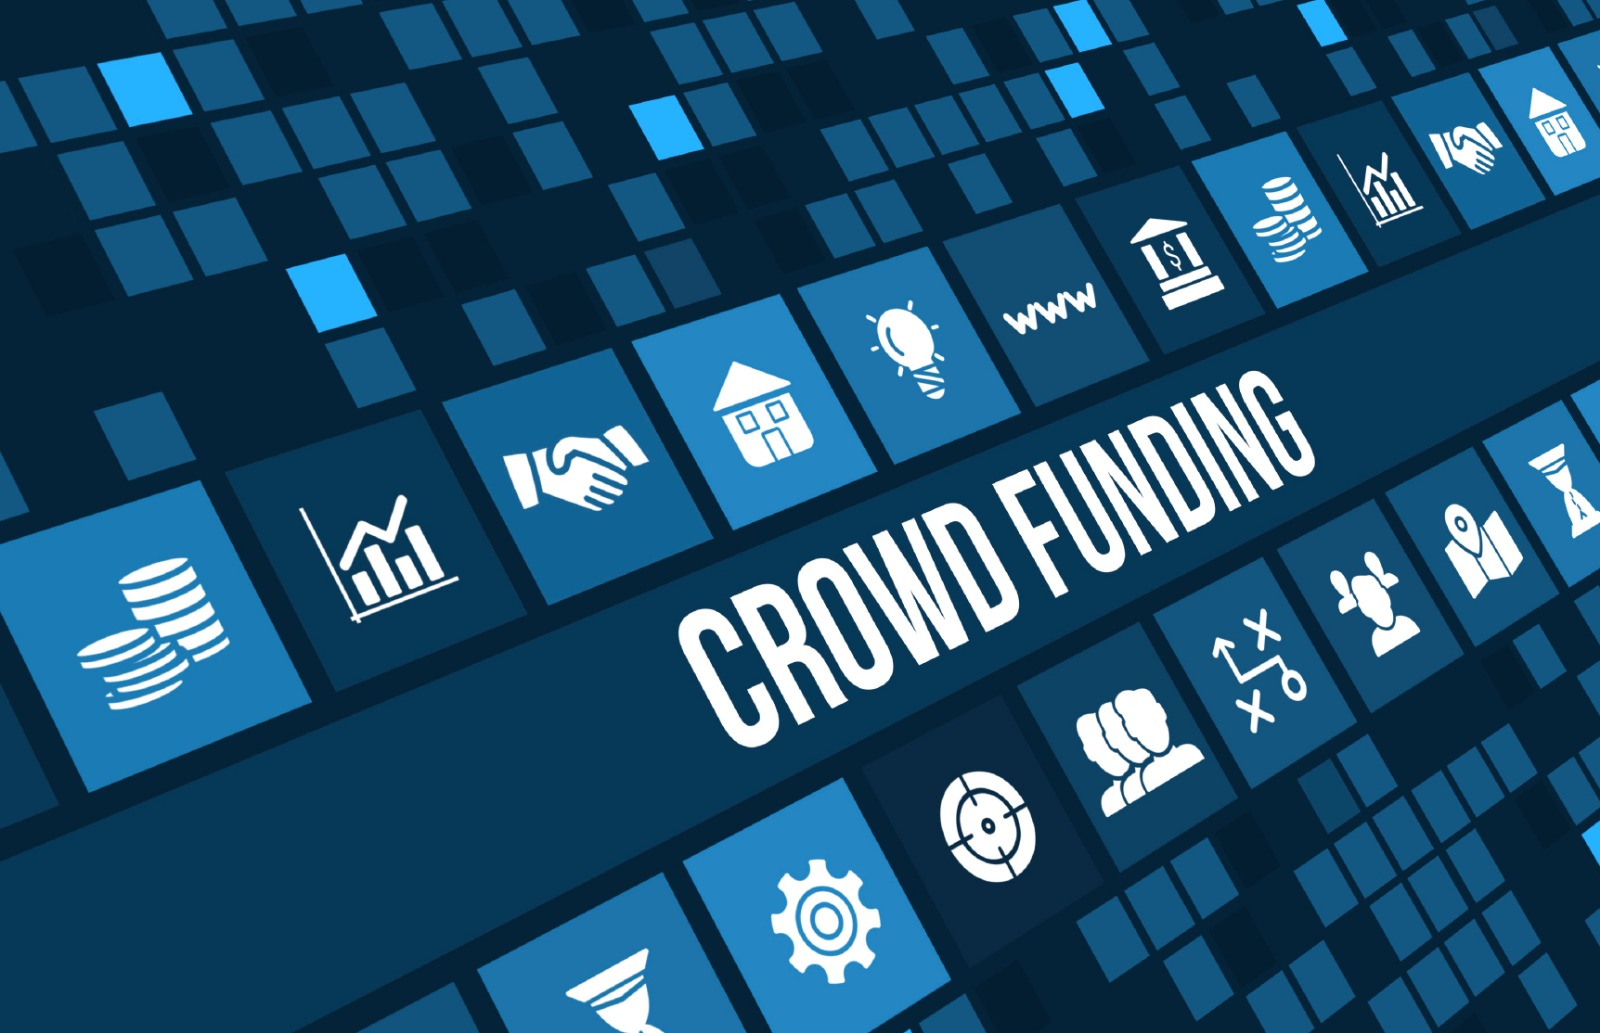 How it works - CoopCrowd Crowdfunding